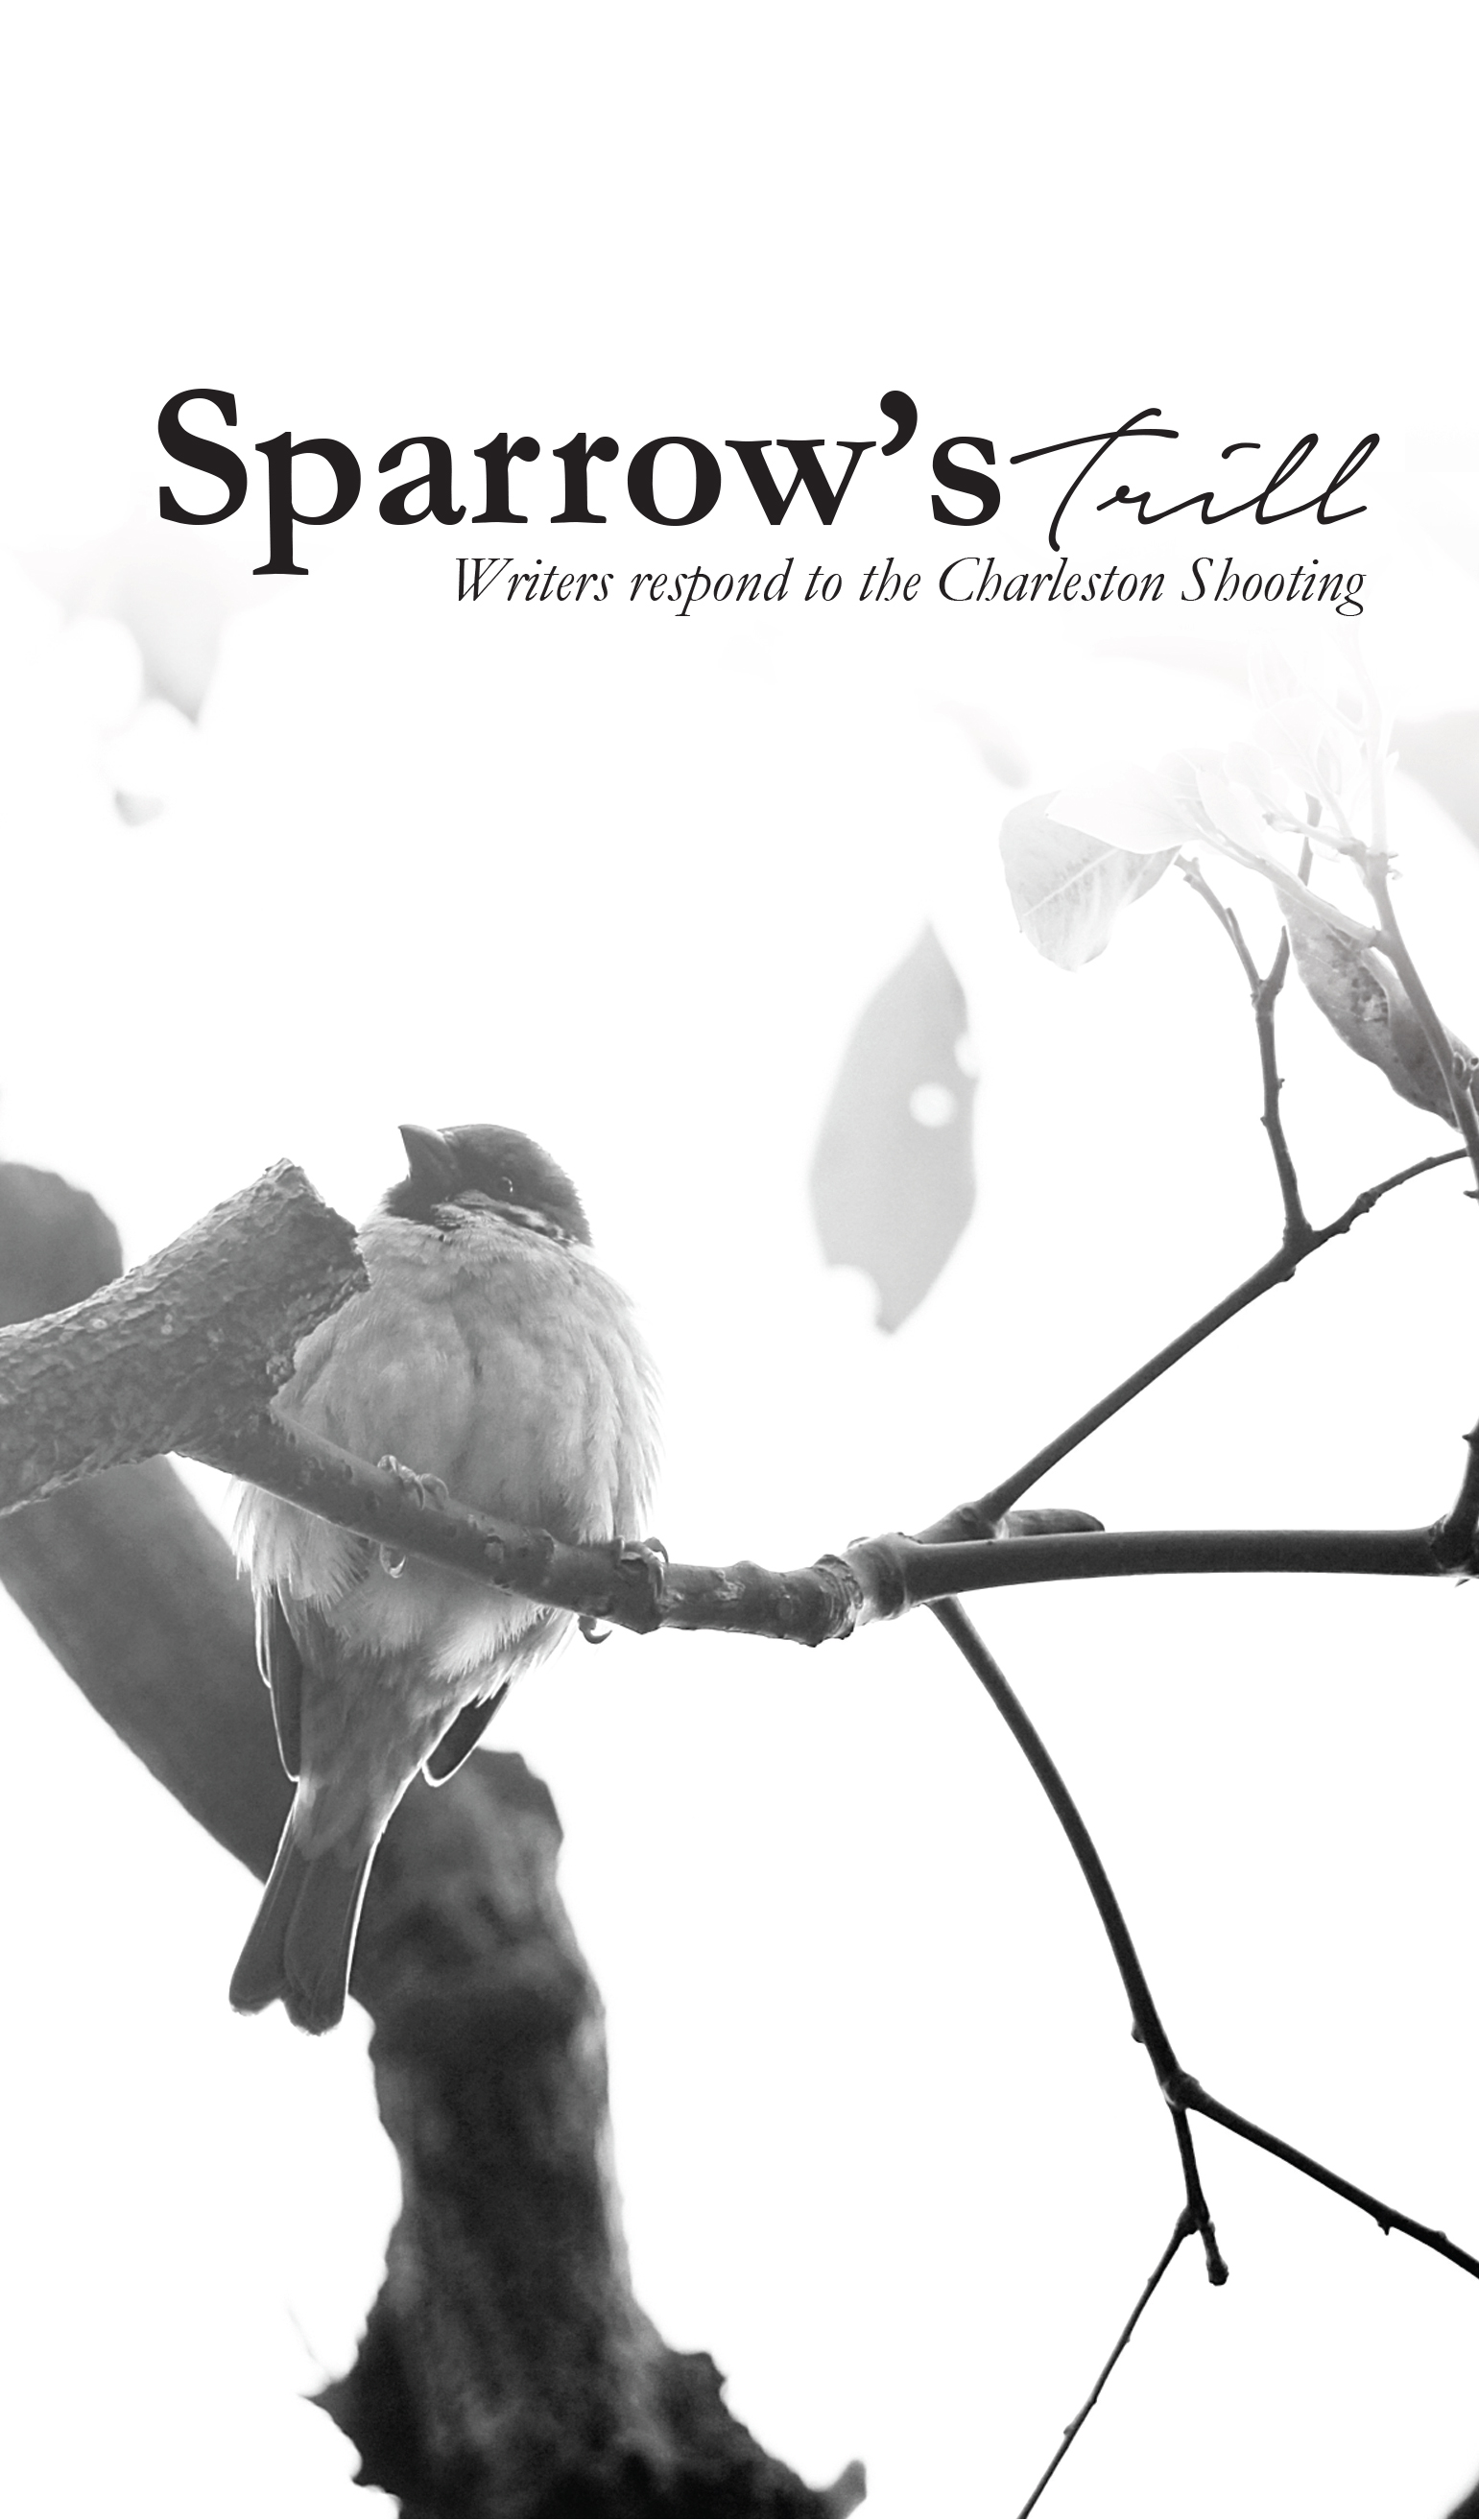 SparrowsTrill_Cover_20151123